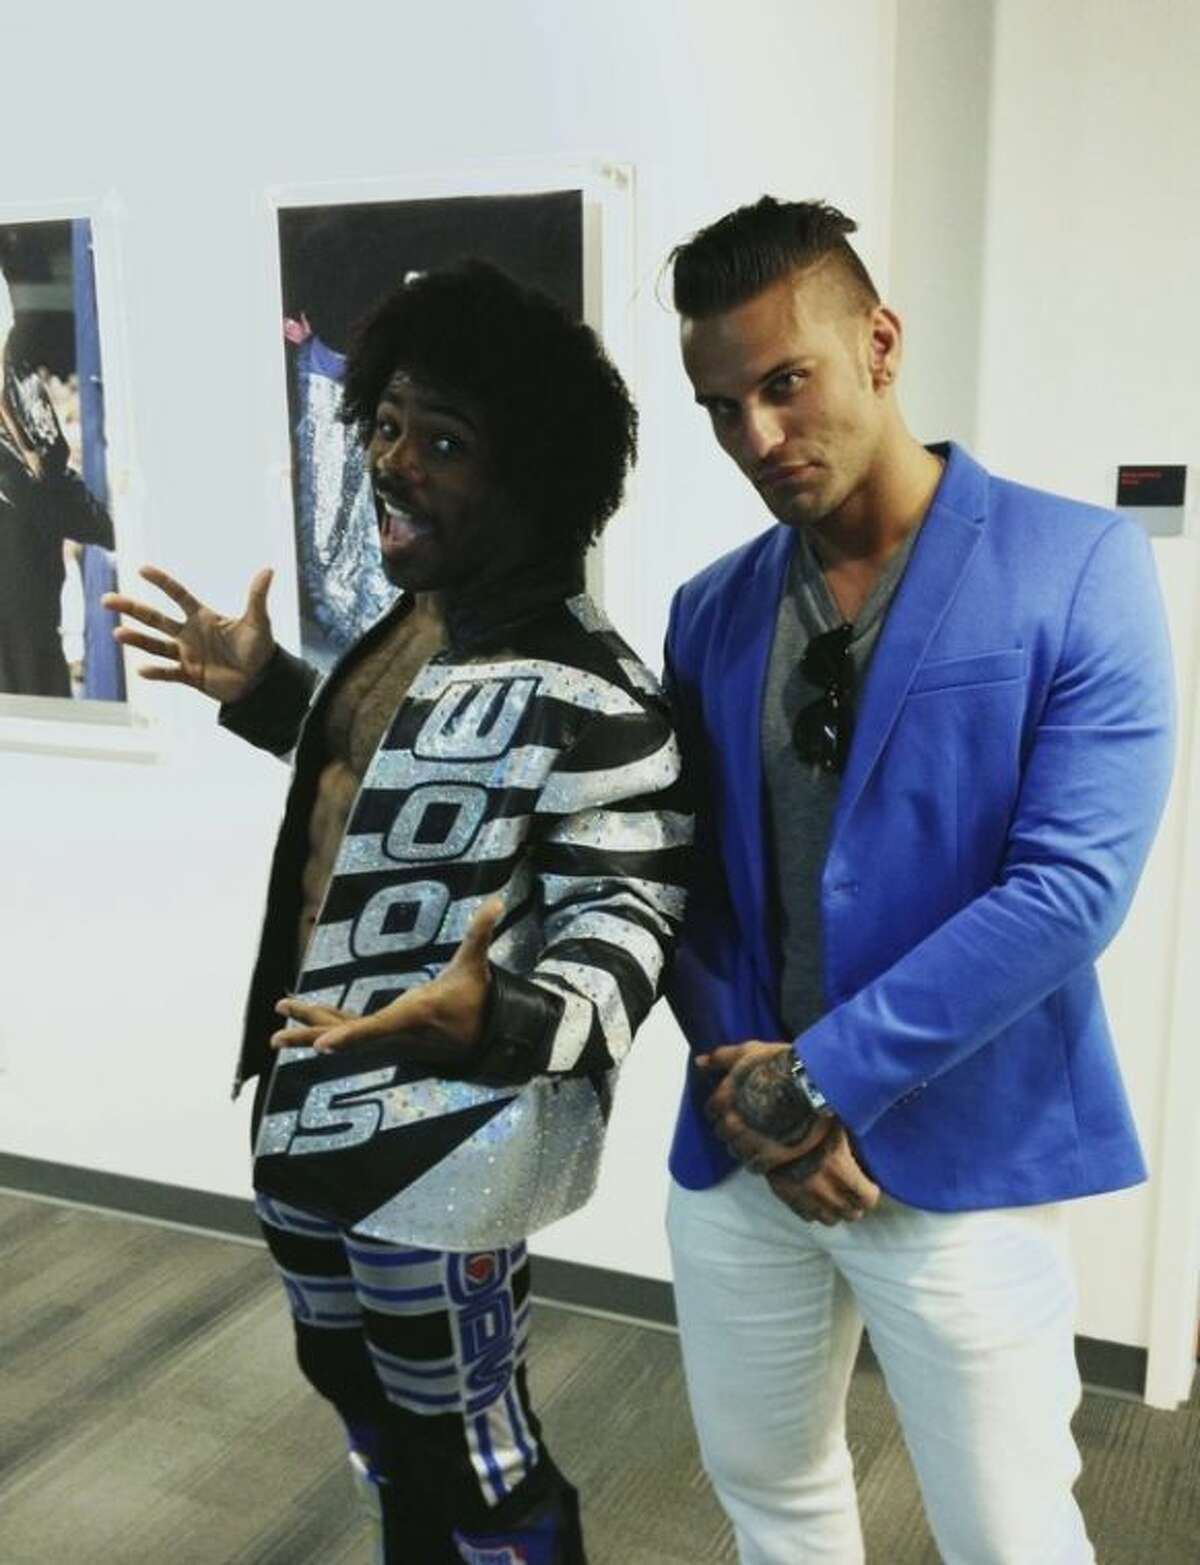 In this July 31, 2013 photo, wrestlers Xavier Woods, left, and Corey Graves pose inside the new World Wrestling Entertainment Performance Center in Orlando, Fla. The $2.5 million, 26,000-square foot facility opened in July, replacing a smaller, antiquated facility in Tampa, Fla. The facility is both a graduate school and a training and rehabilitation center. (AP Photo/Kyle Hightower)